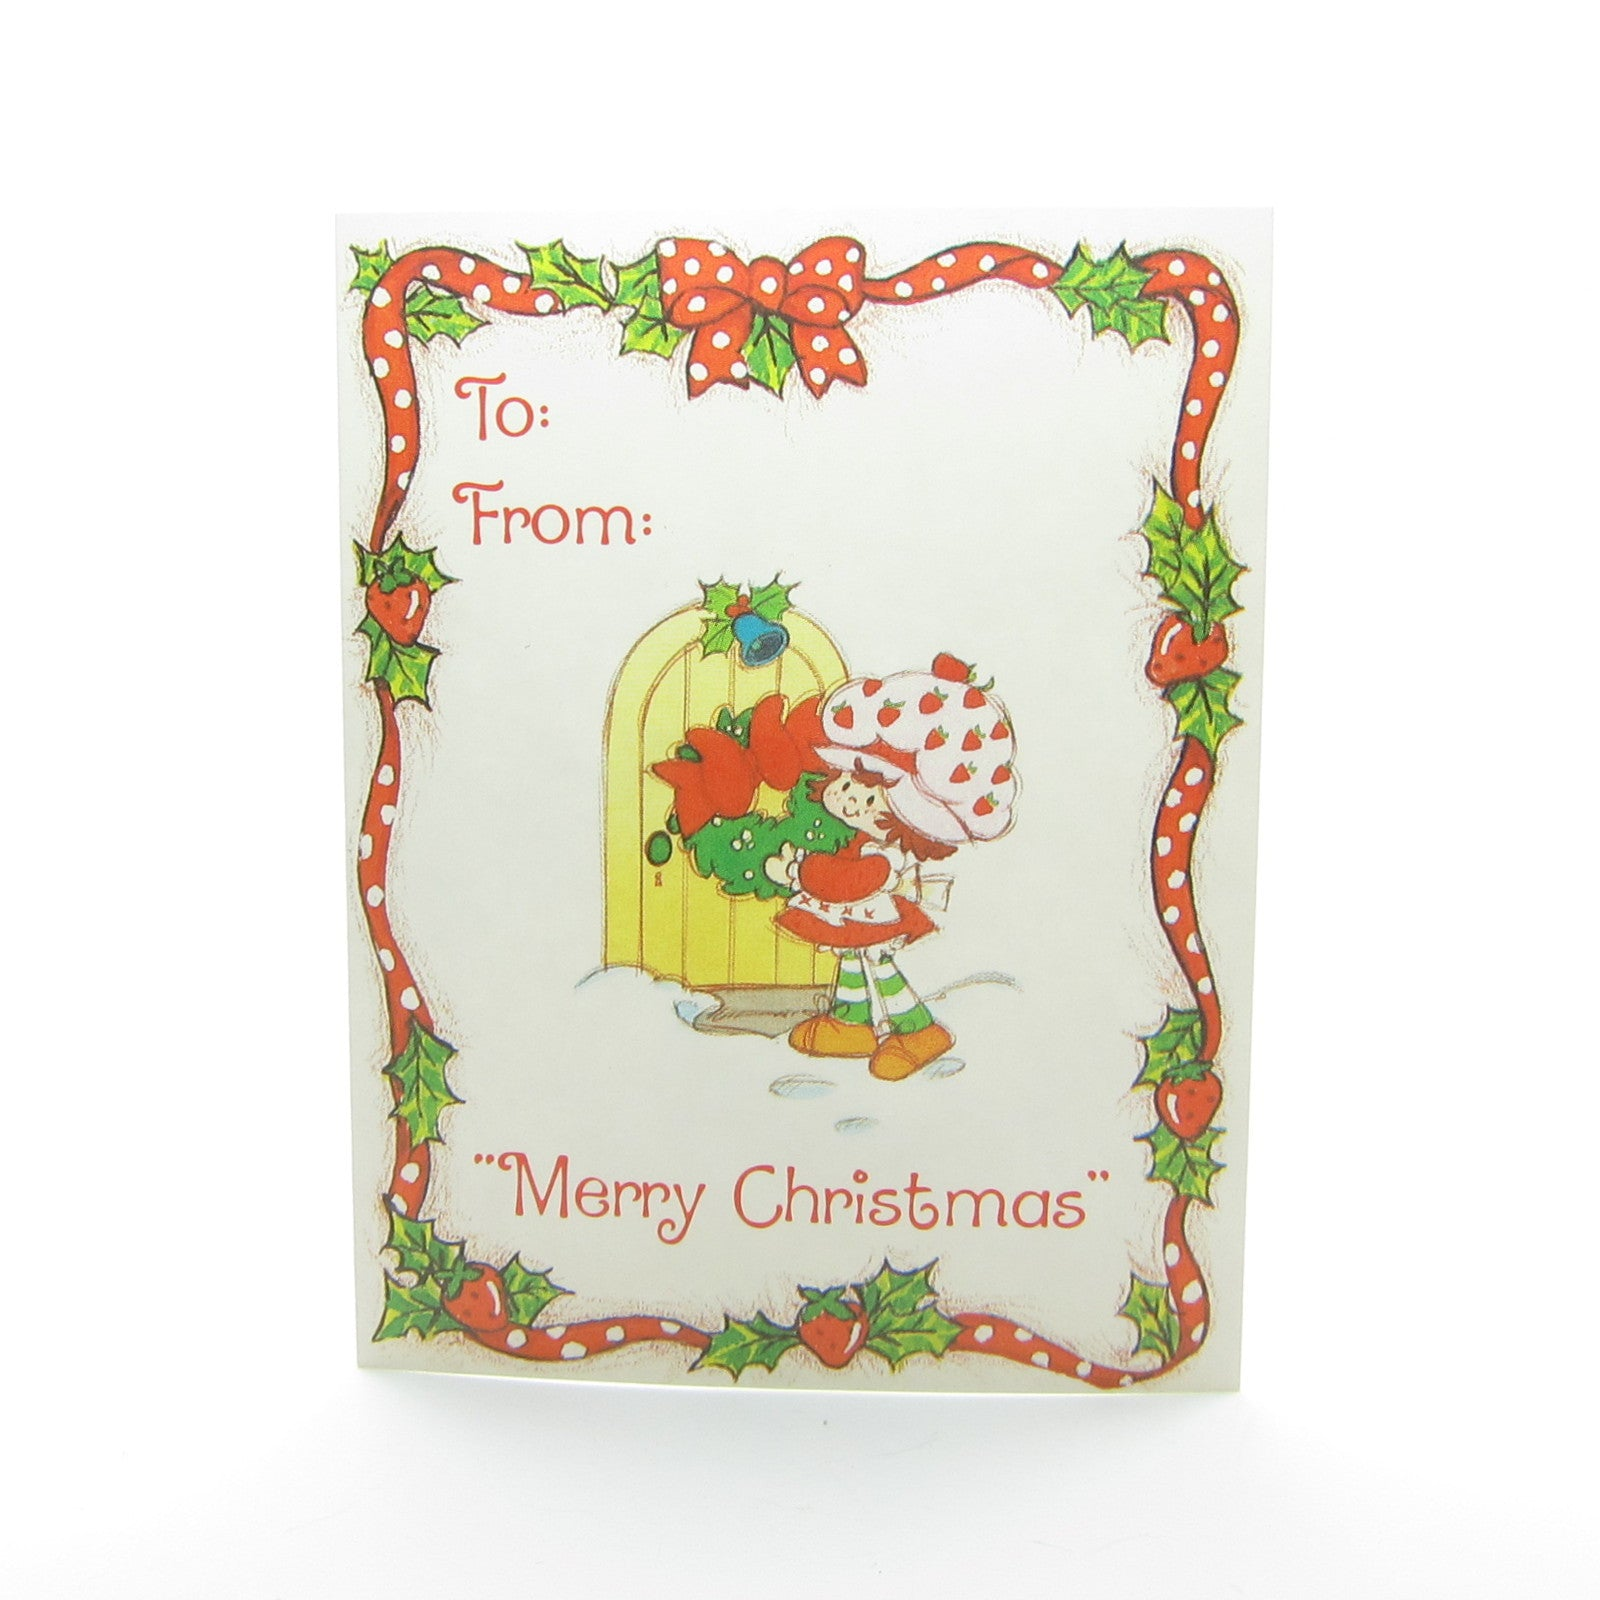 Strawberry Shortcake Merry Christmas gift tag